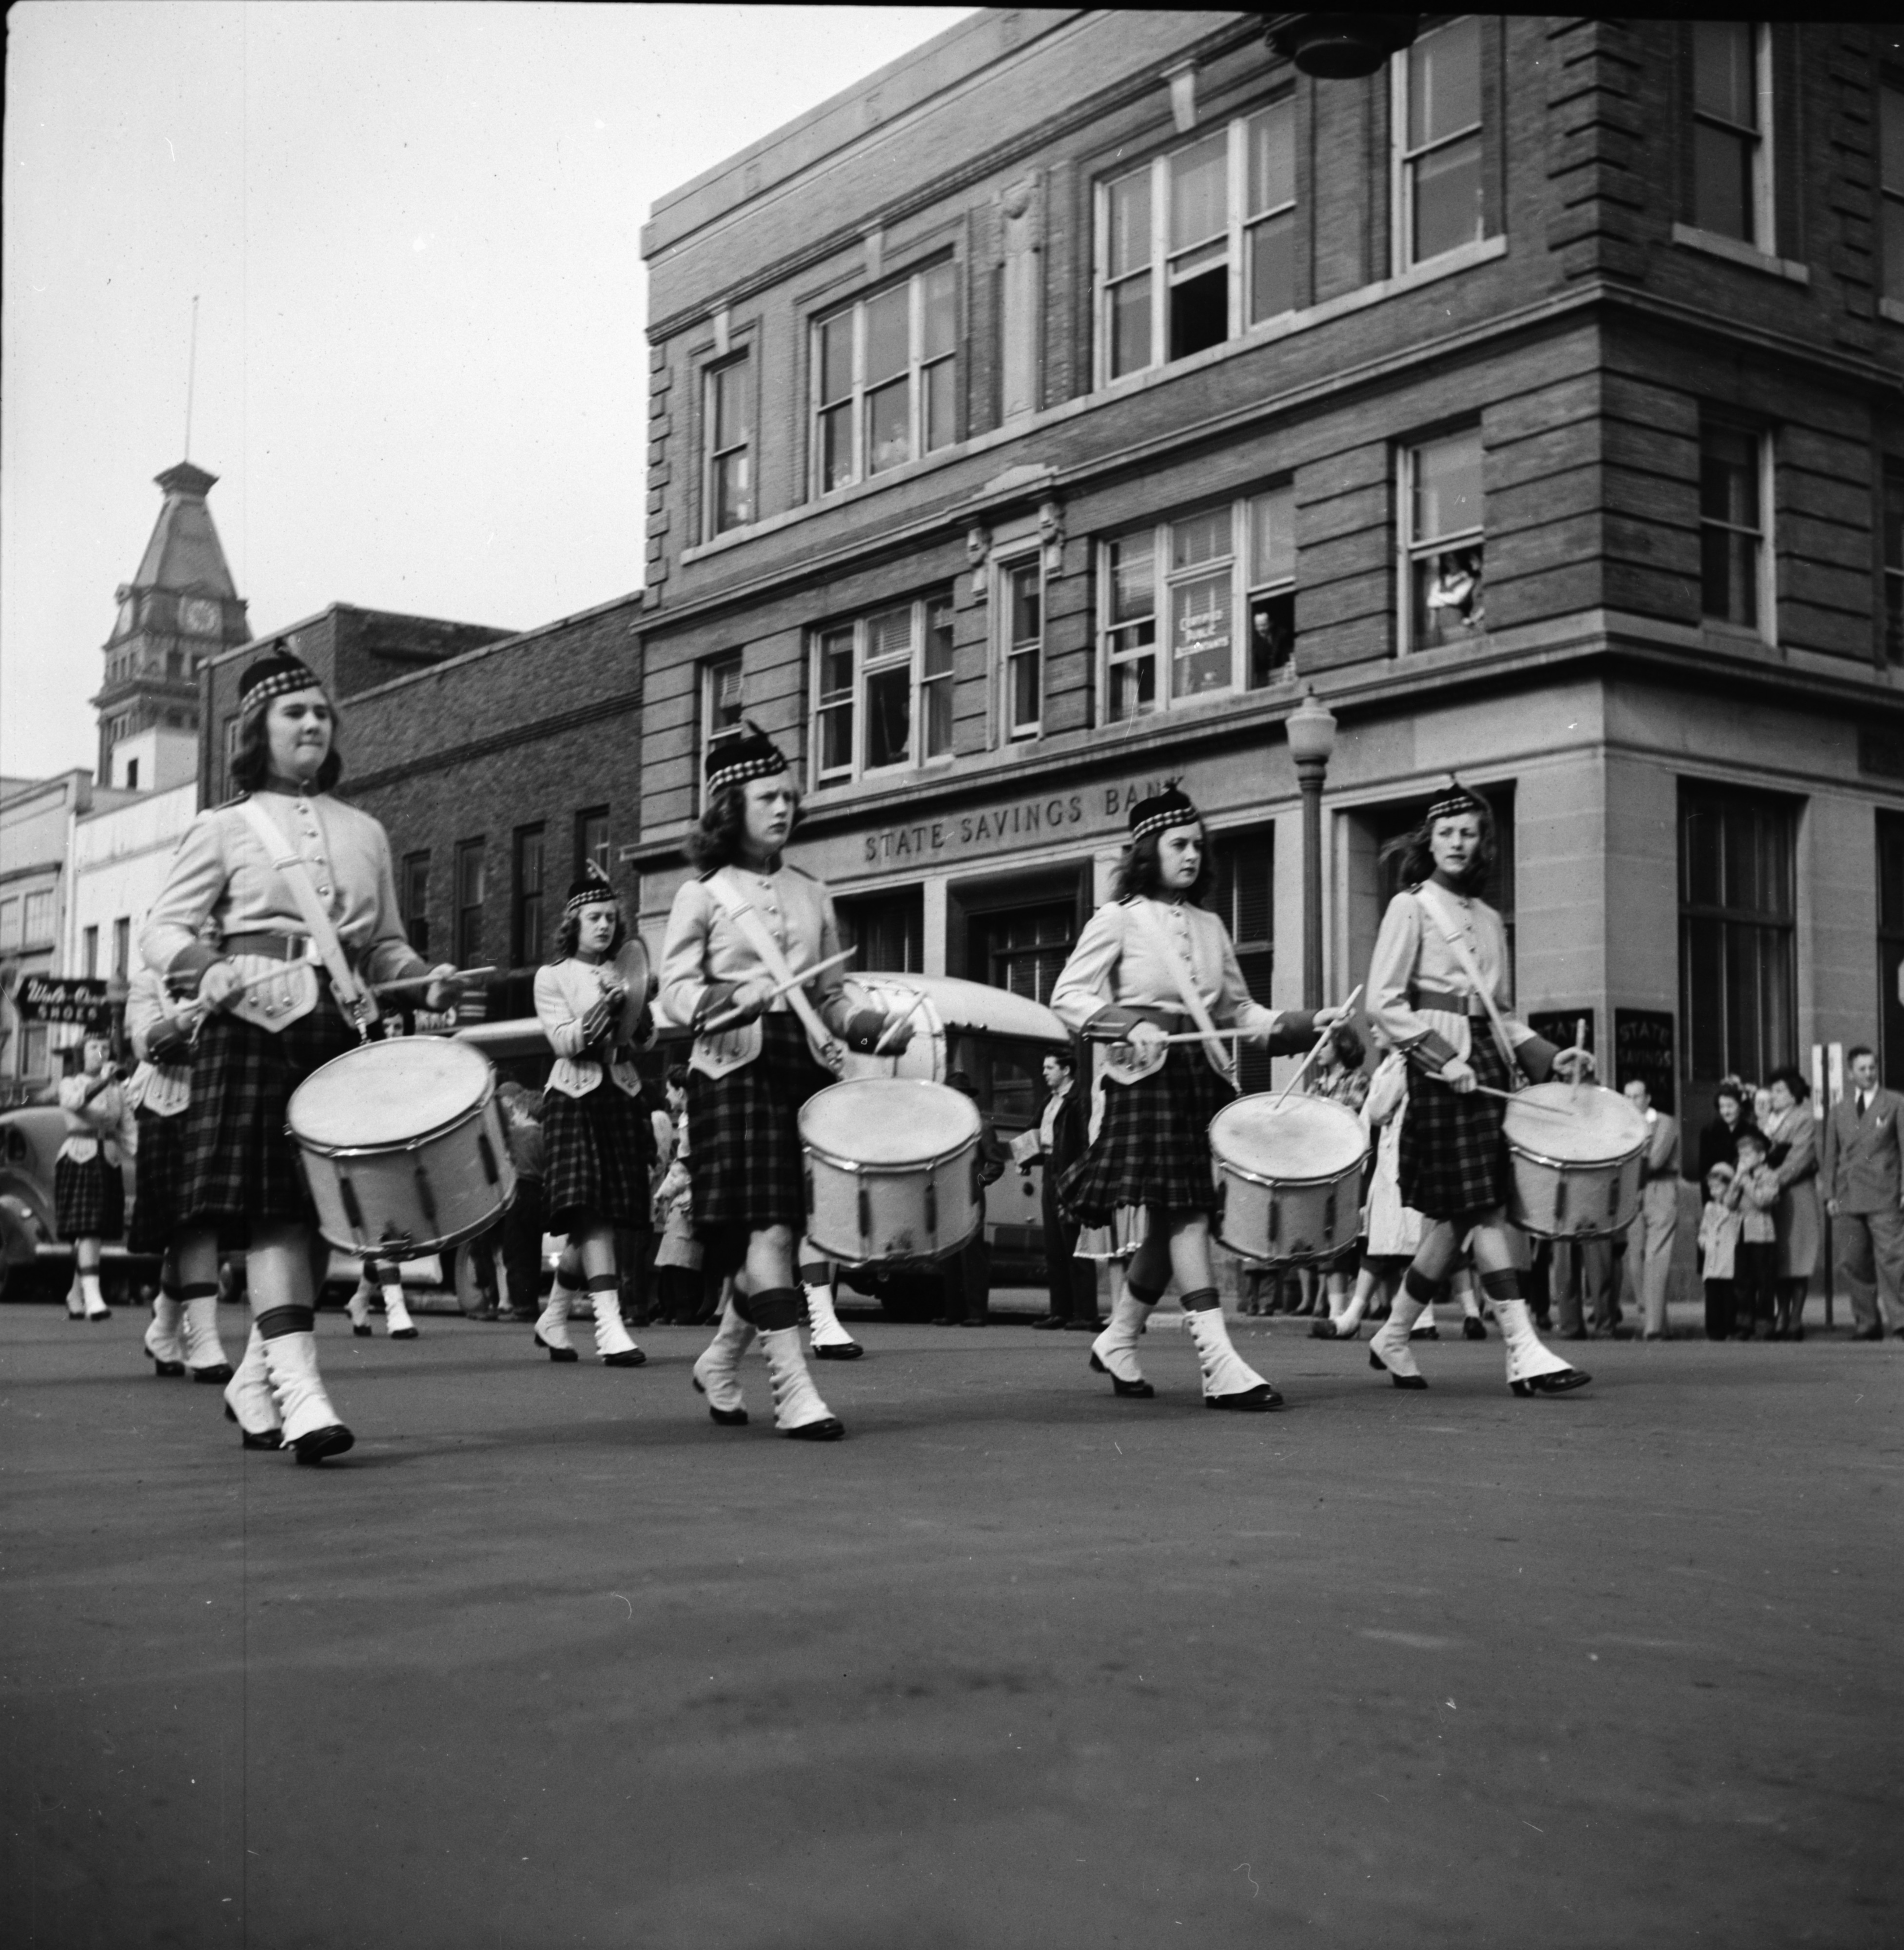 Female Drummers March by the State Savings Bank, U-M Michigras Parade, April 1948 image